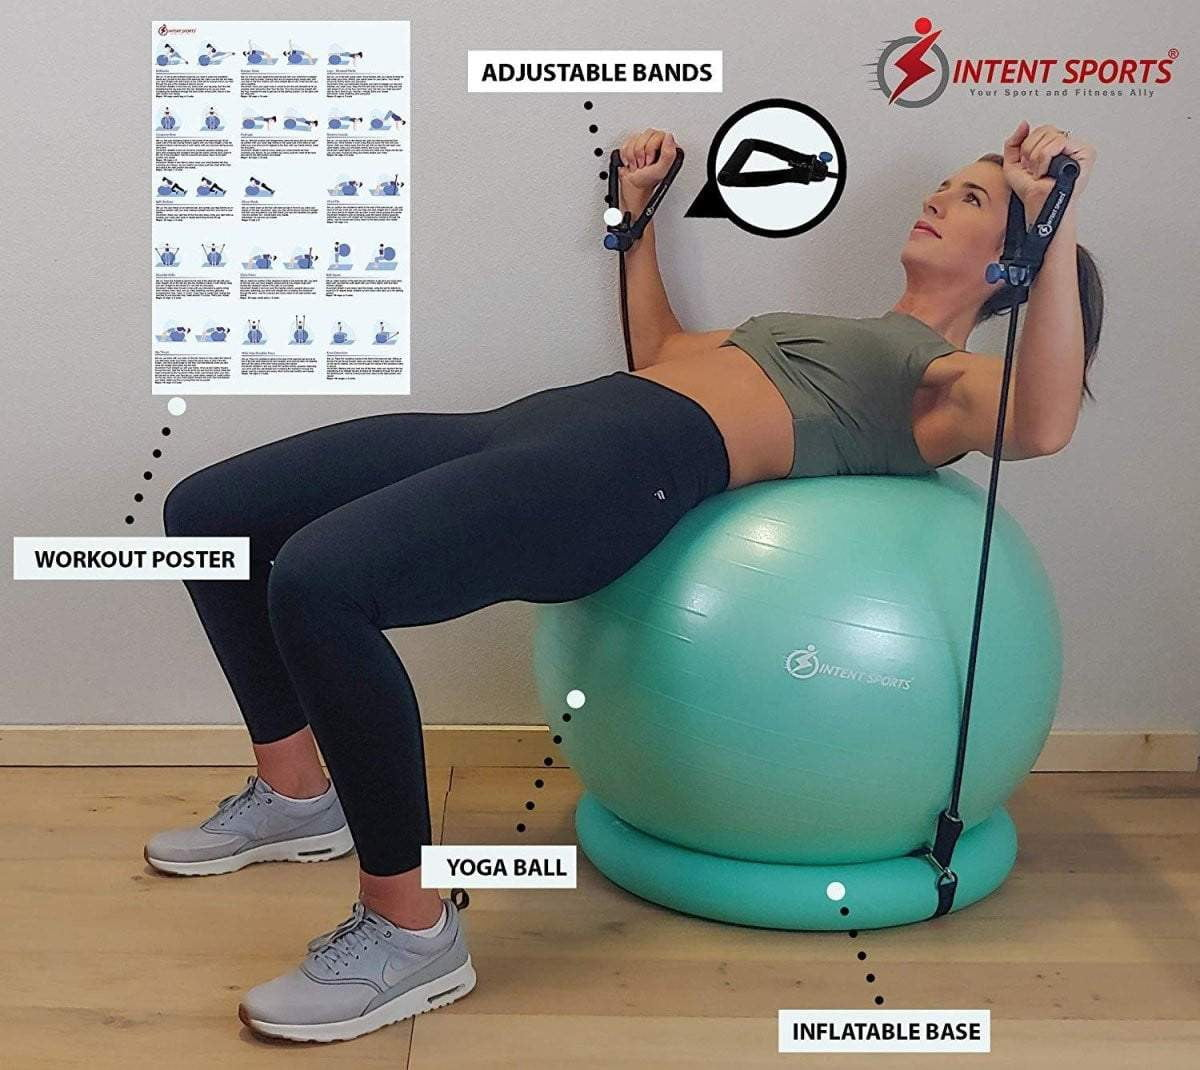 Yoga Exercise Ball Gym - Intent Sports